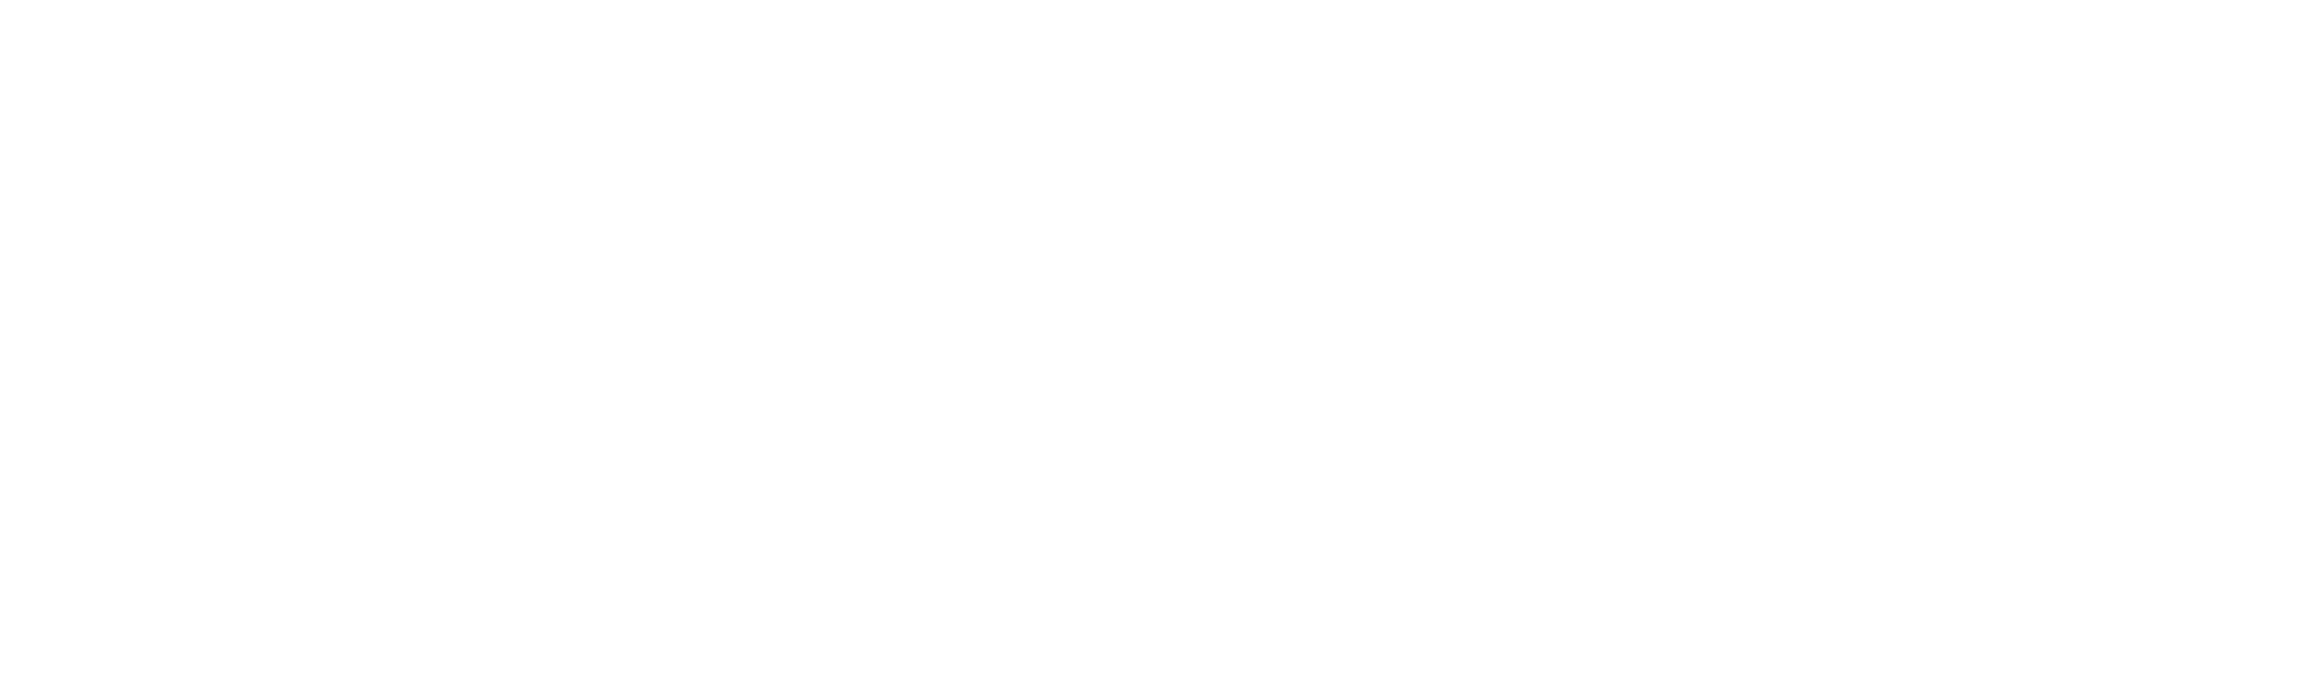 Hosted by Simon Fieber IT-Services